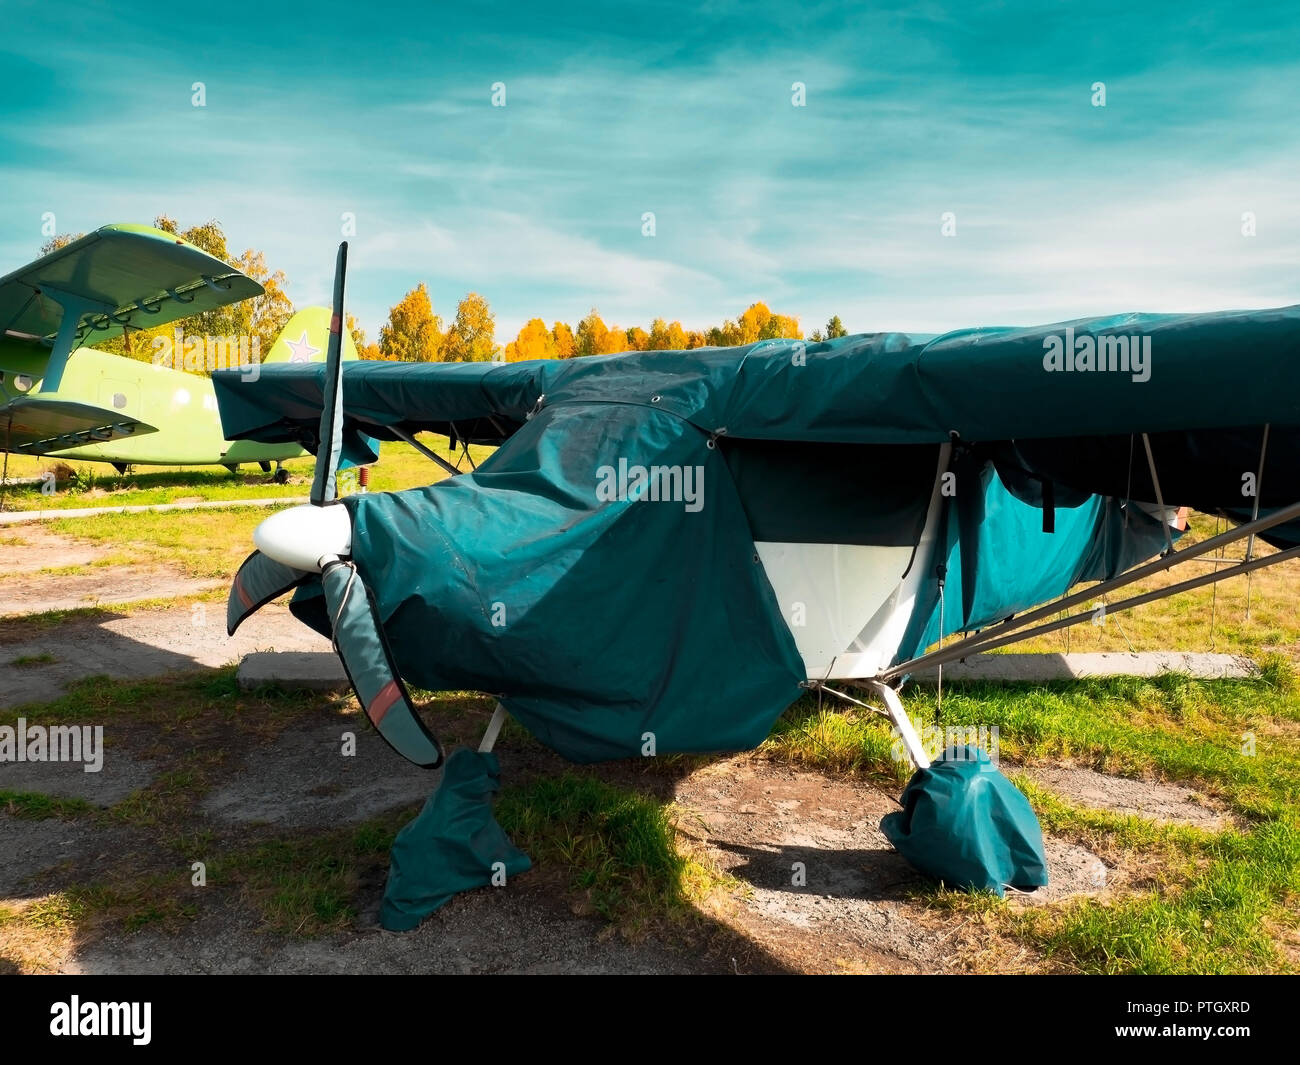 View of classic airplane on the grassy airfield; aircraft after the flight with cases on propellers and other elements; leisure activity and entertain - Stock Image